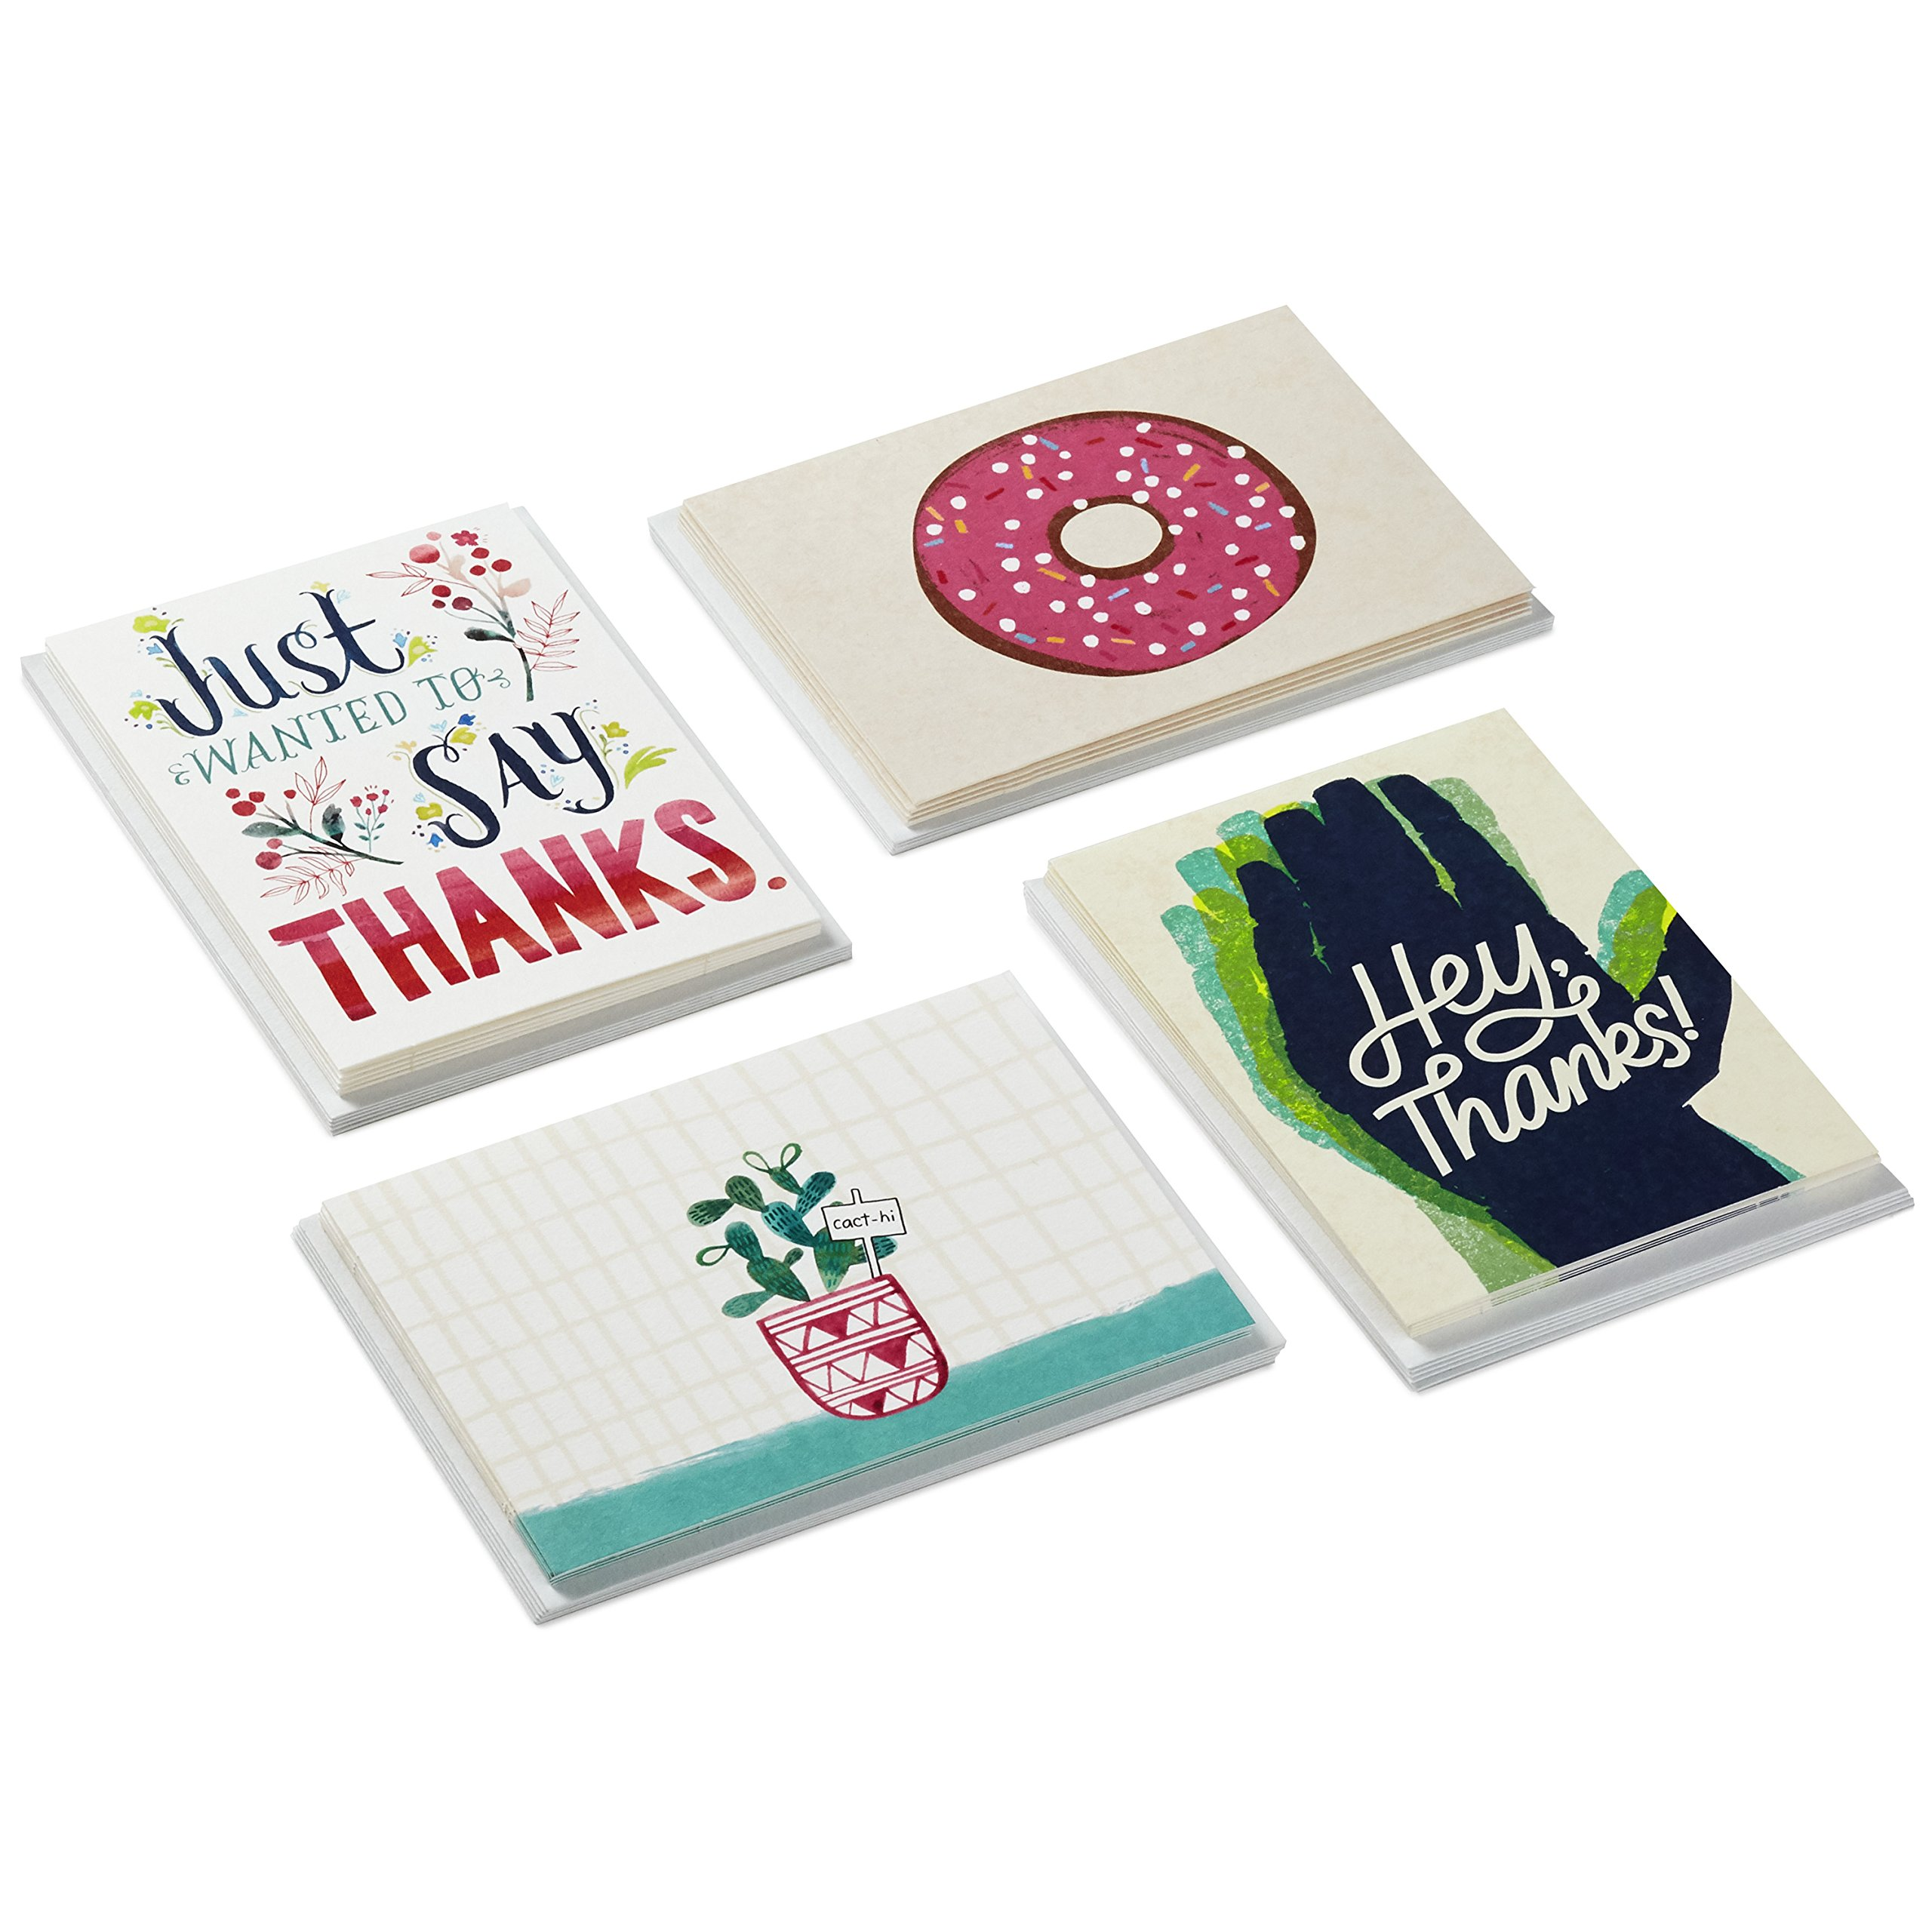 Studio Ink Assorted Thank You and Blank Card Set, 20 Cards with Envelopes (5 ct. of 4 Designs, Blank Inside)